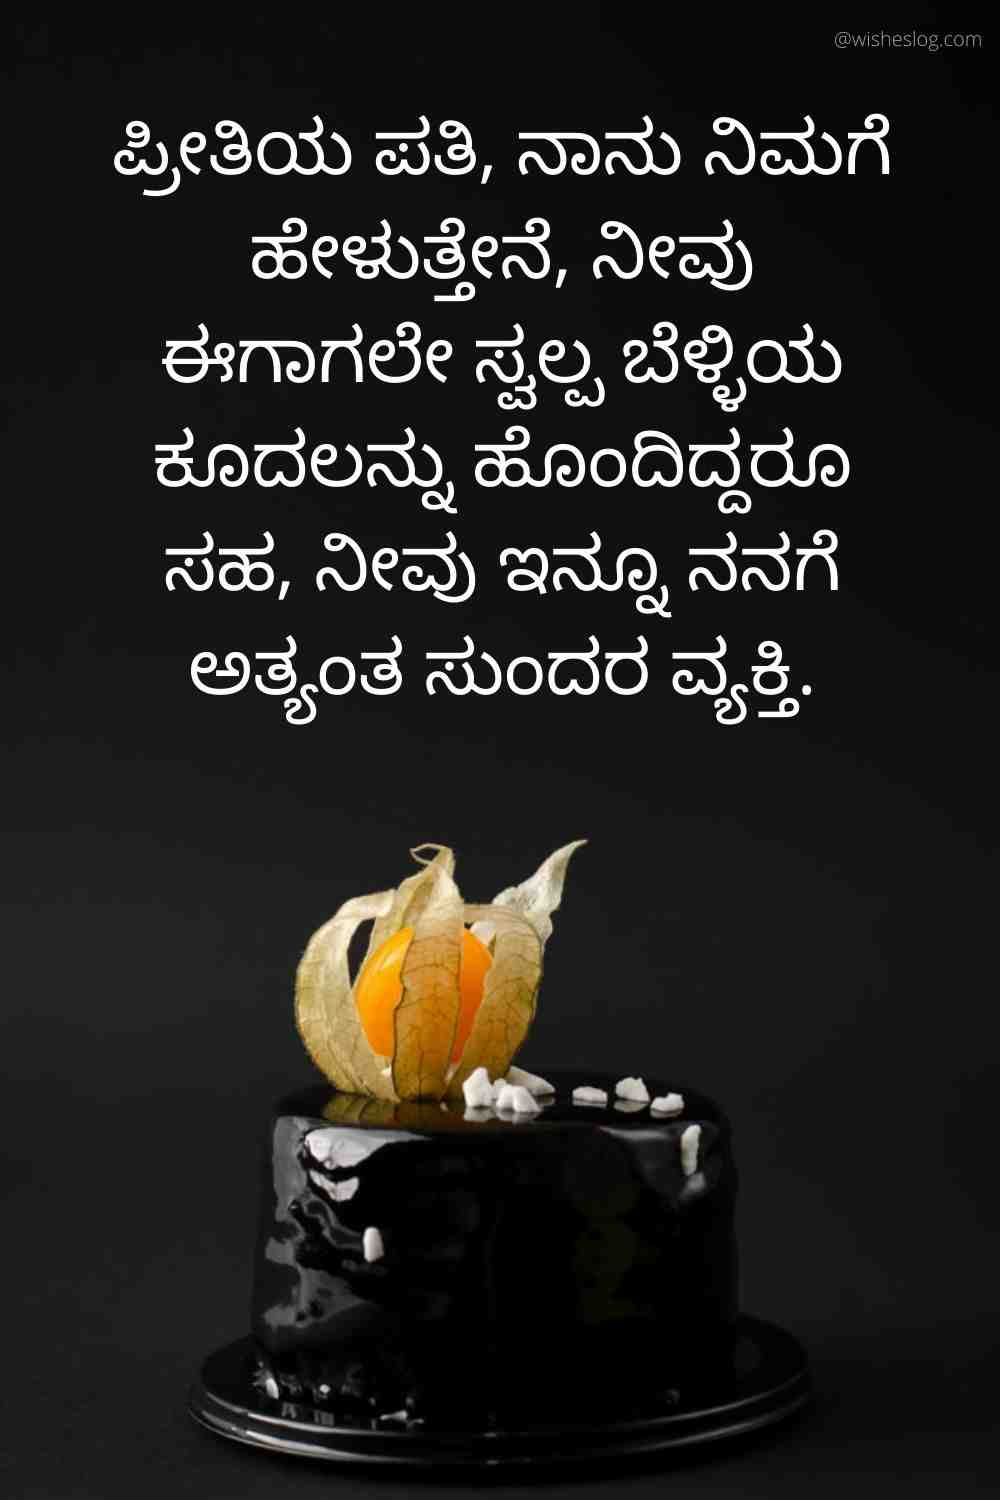 birthday wishes for husband with love in kannada